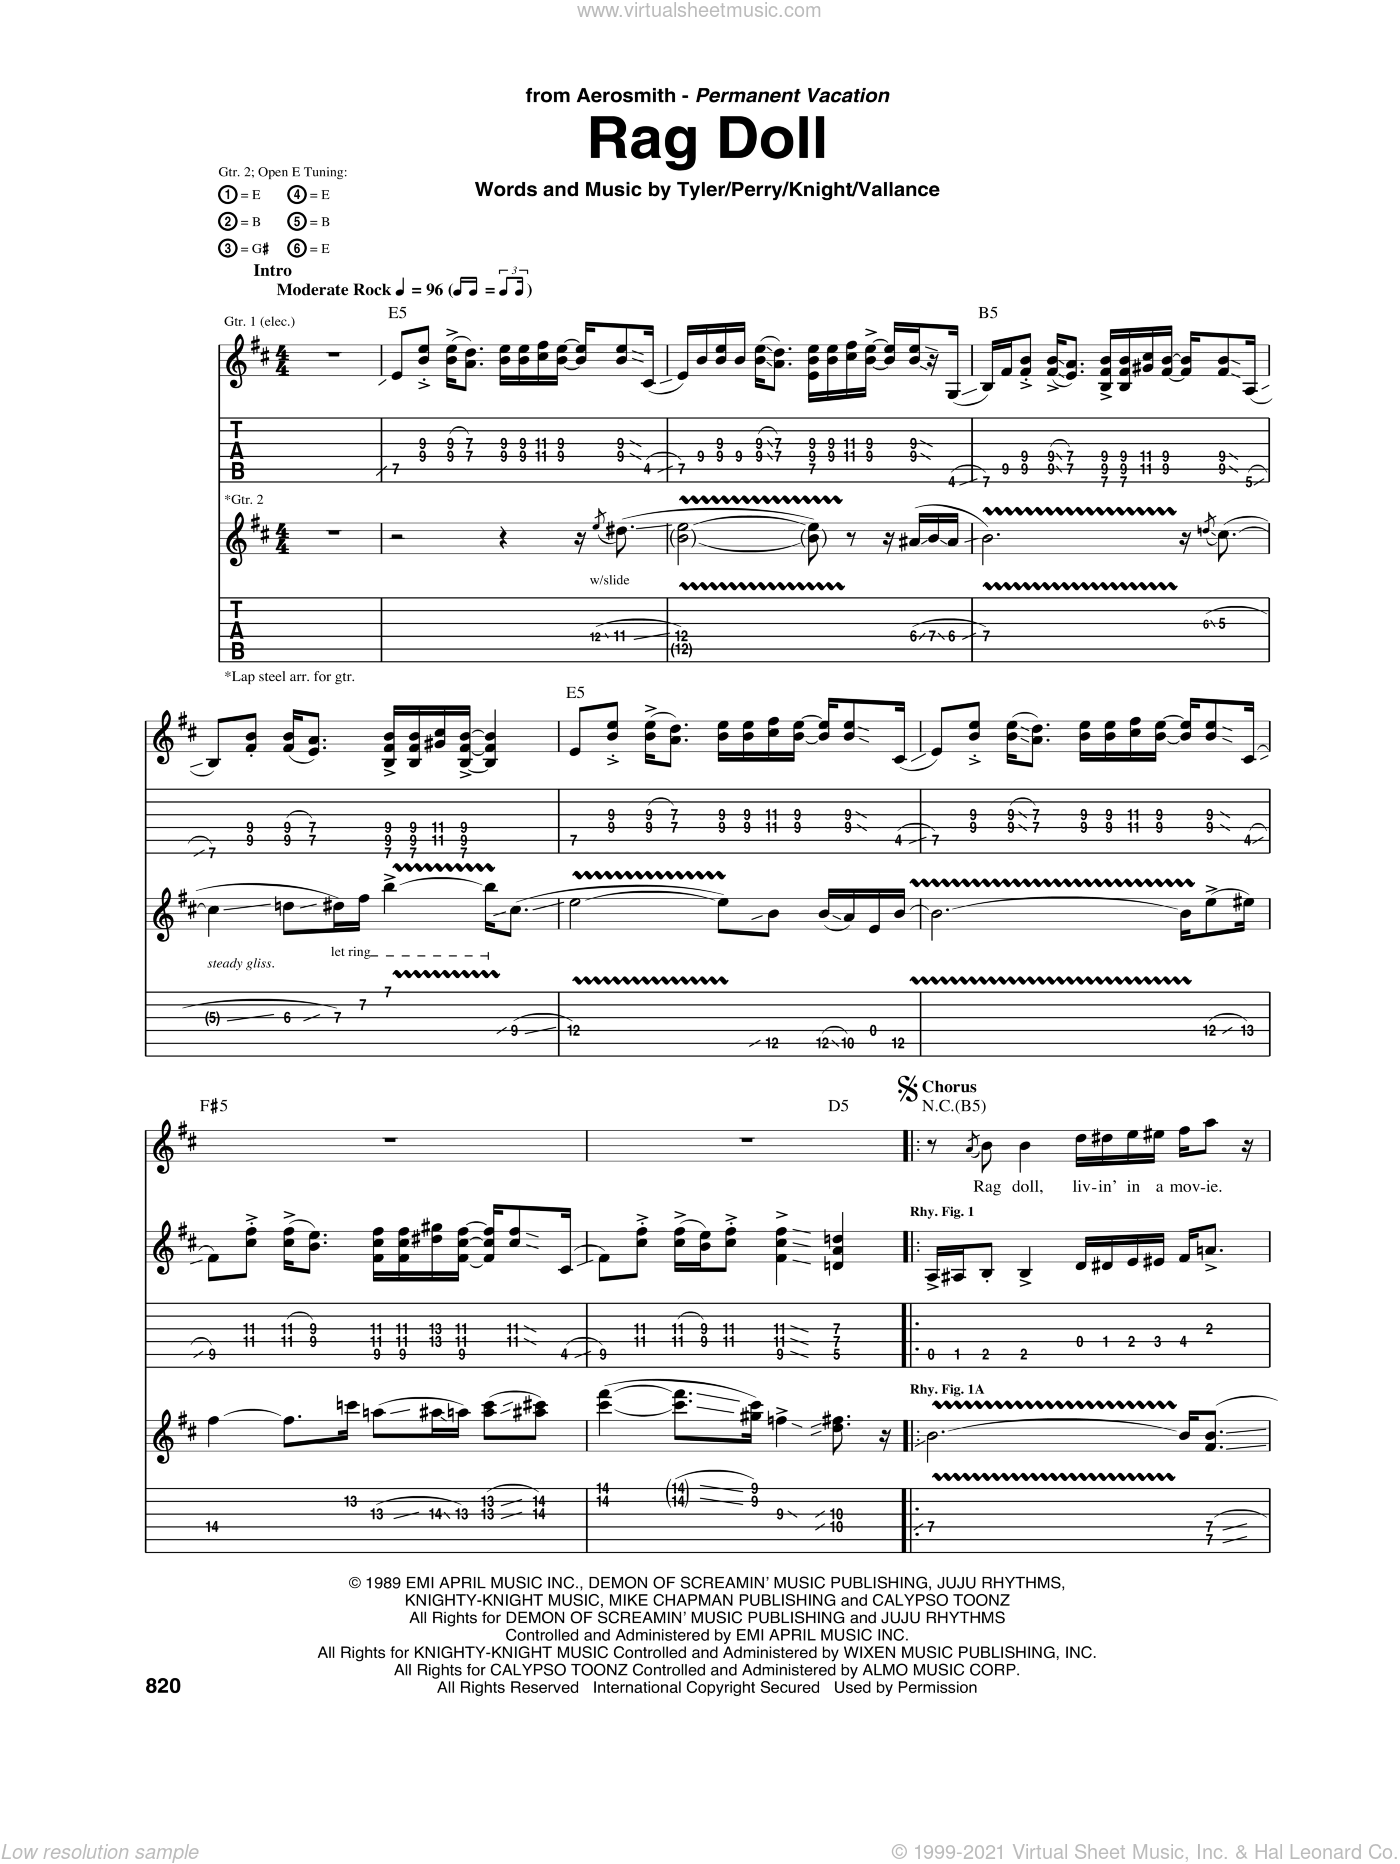 Rag Doll sheet music for guitar (tablature) by Steven Tyler